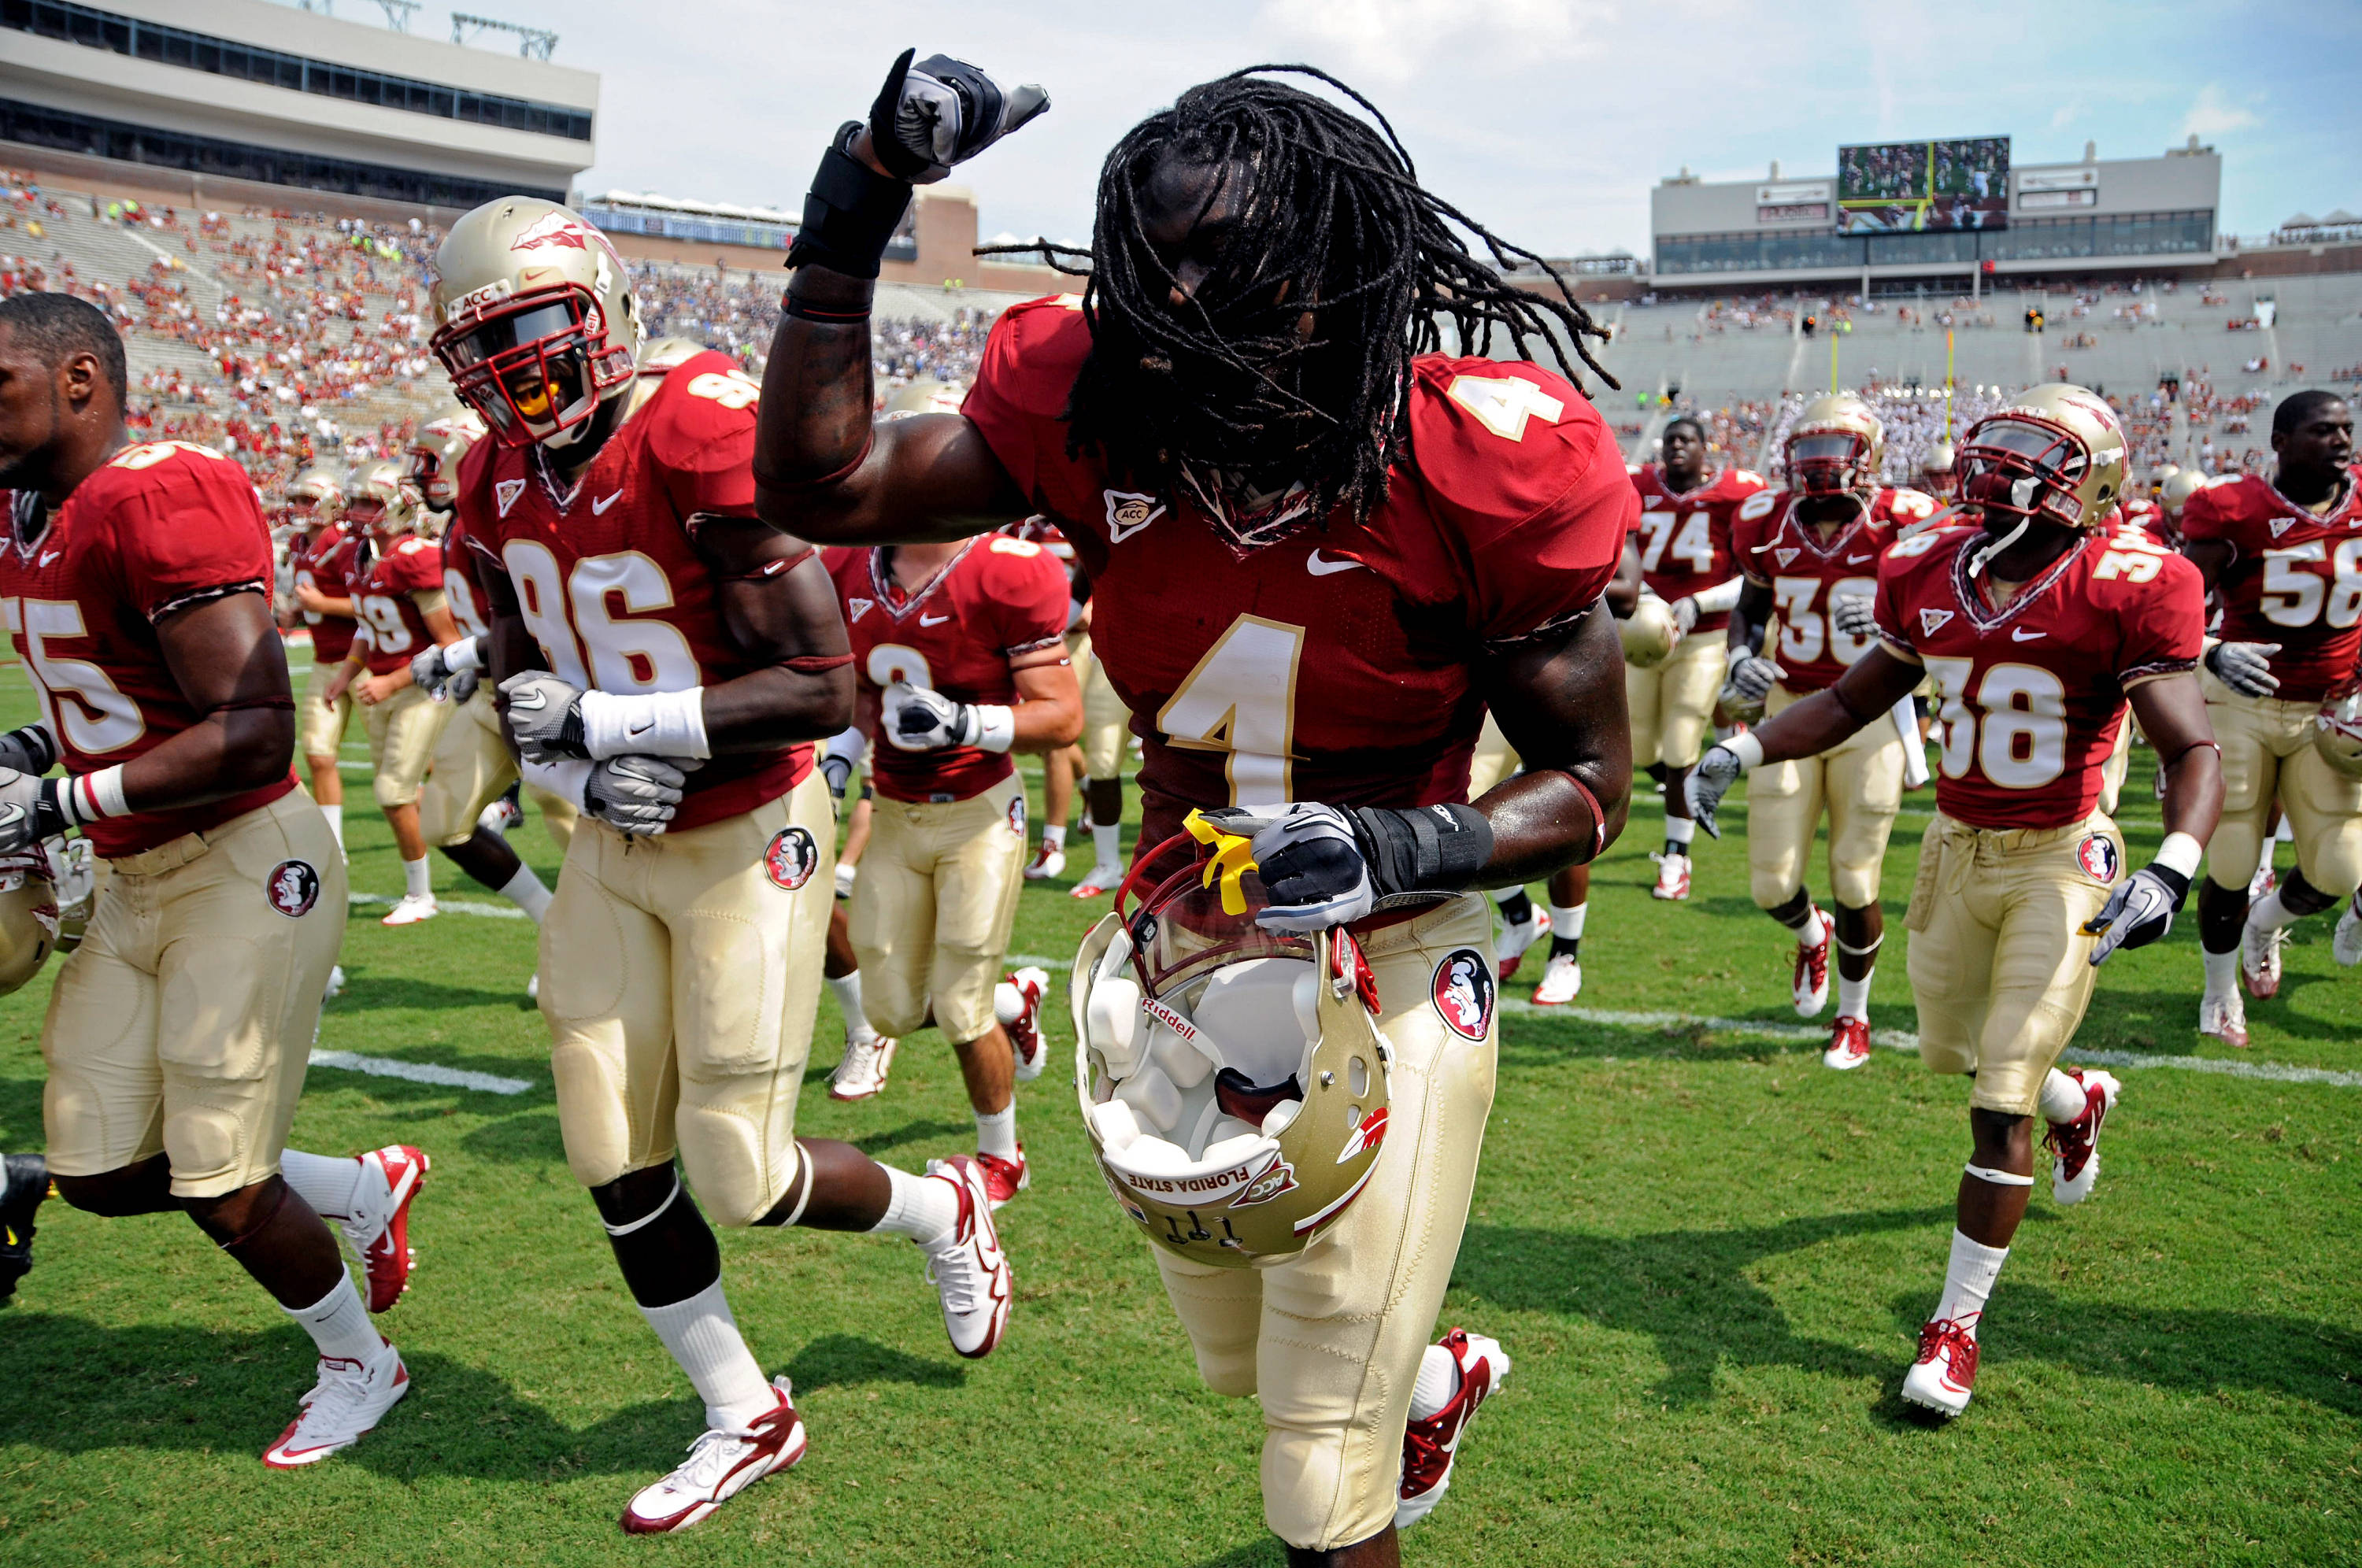 Players excited before the game